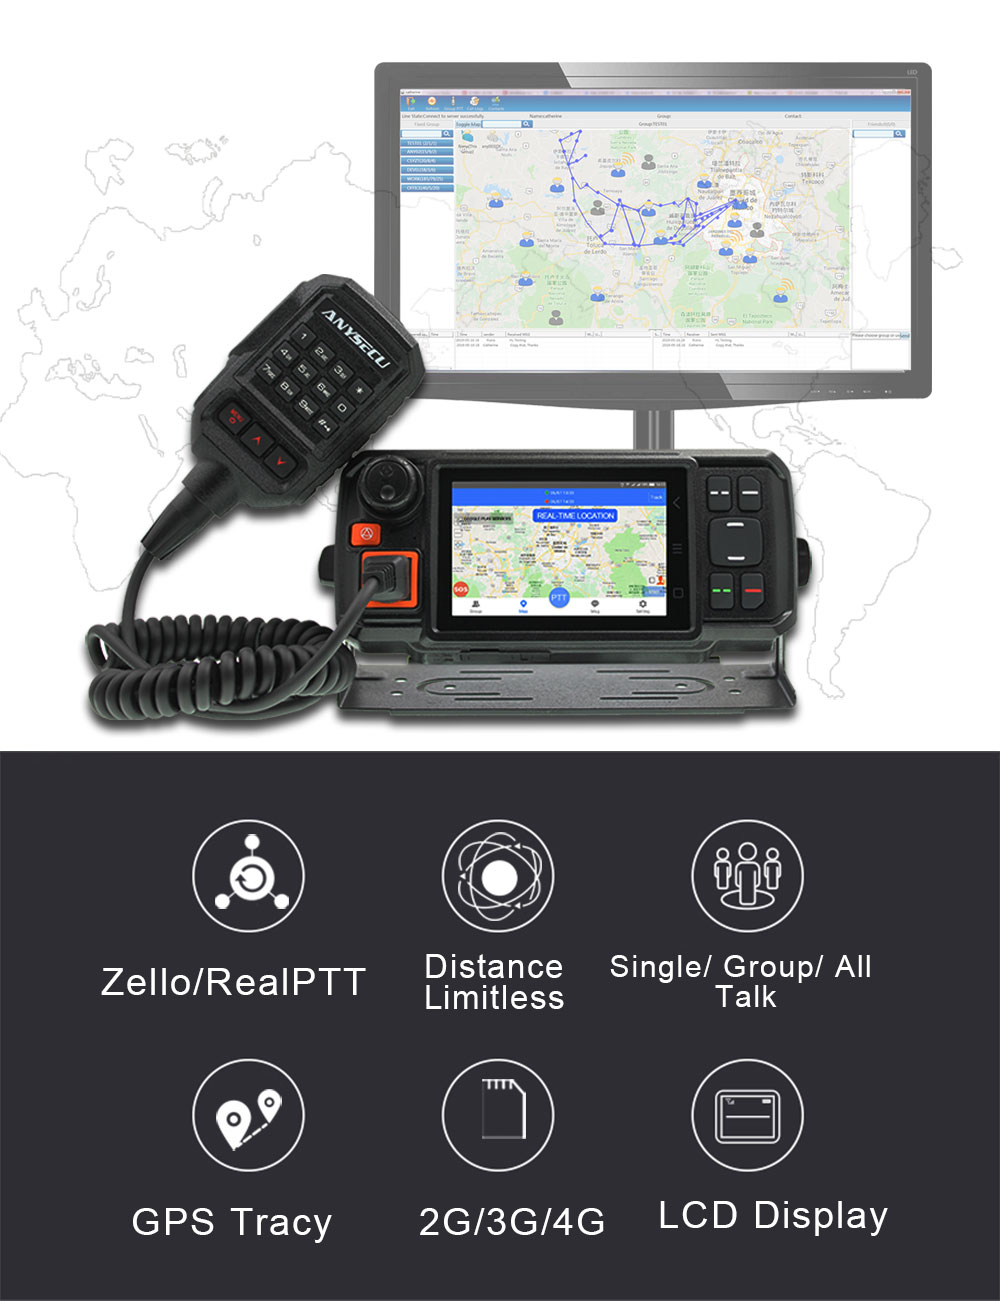 Anysecu 4G Android Network Transceiver GPS Walkie Talkie 4G-W2Plus POC mobile Radio Anysecu N60plus Android Car Radio